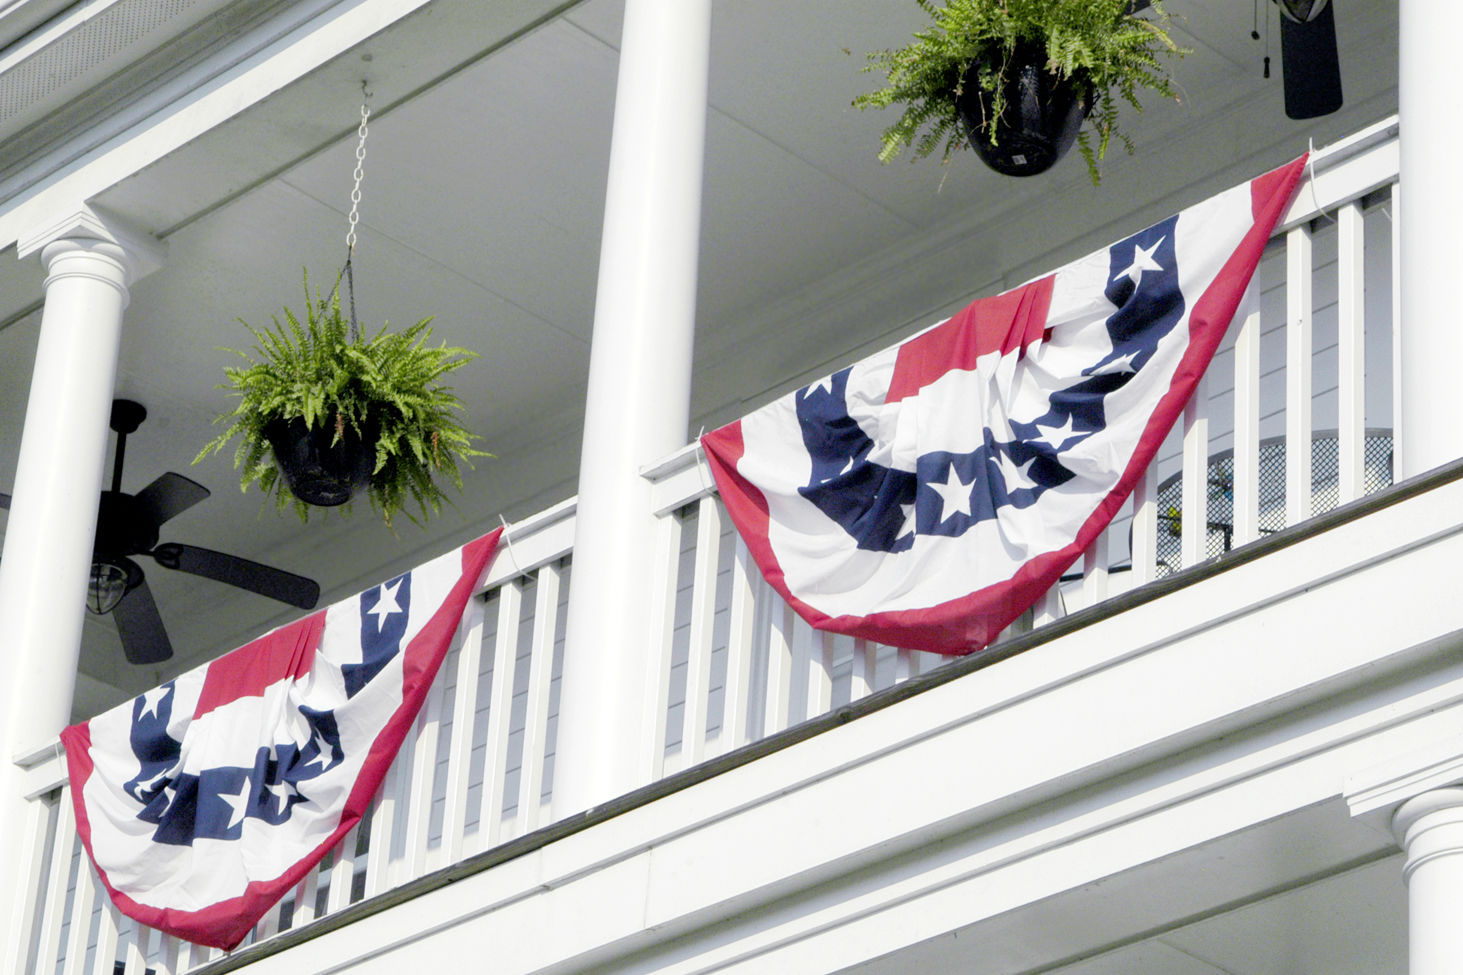 Boston Ferns Are the South's Favorite Porch Plants